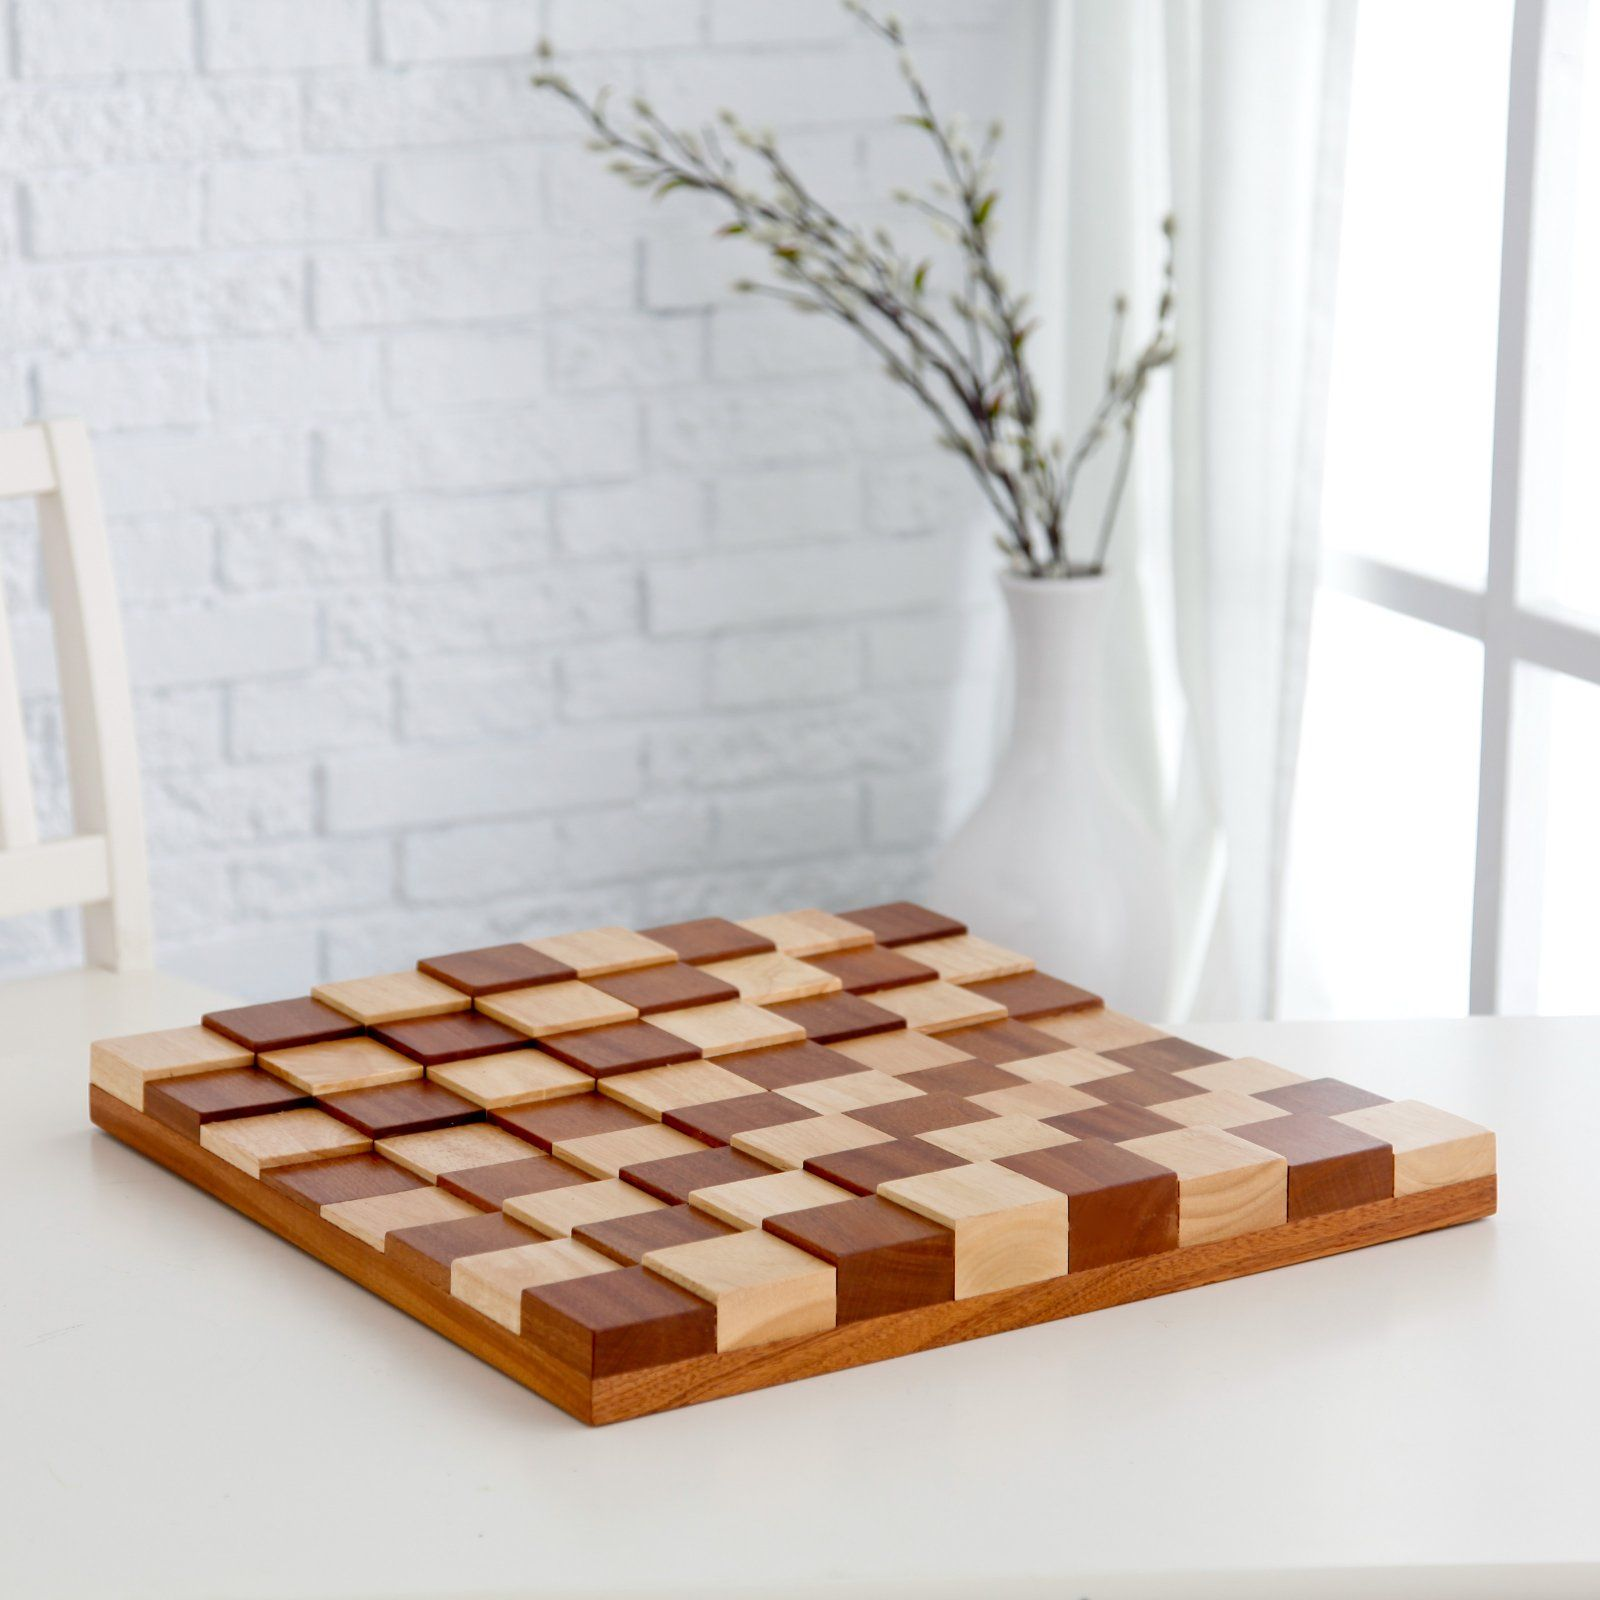 Diy Wood Chess Board 3d Tiered Solid Sapele Wood Chess Board Furniture